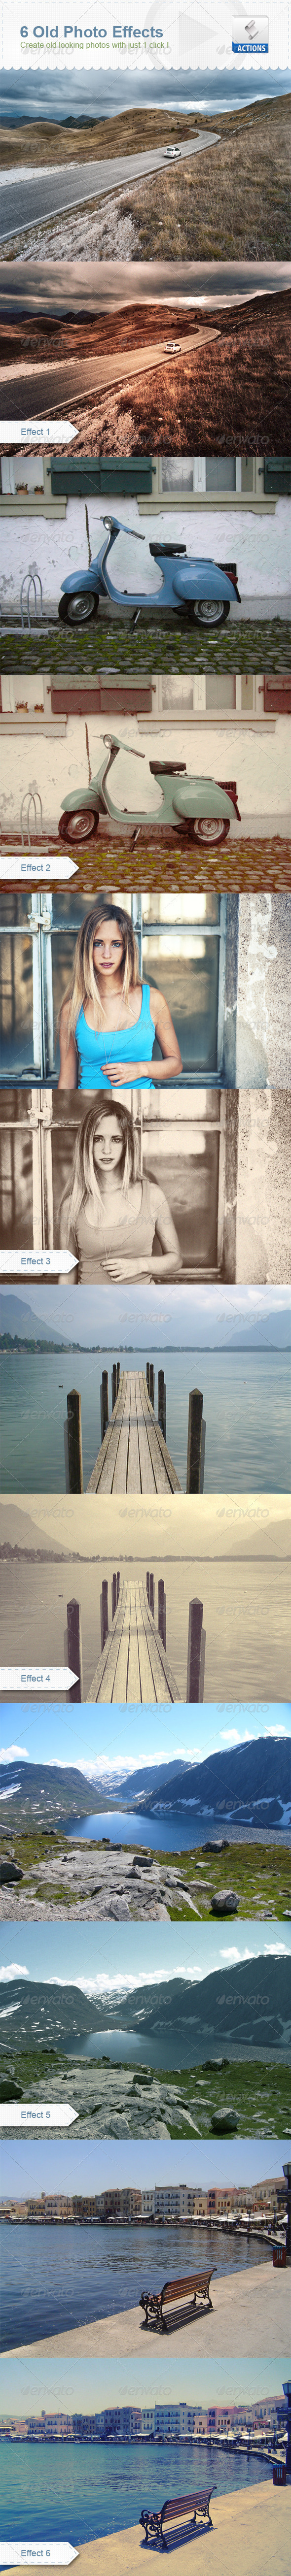 6 Old Photo Effects - Photo Effects Actions